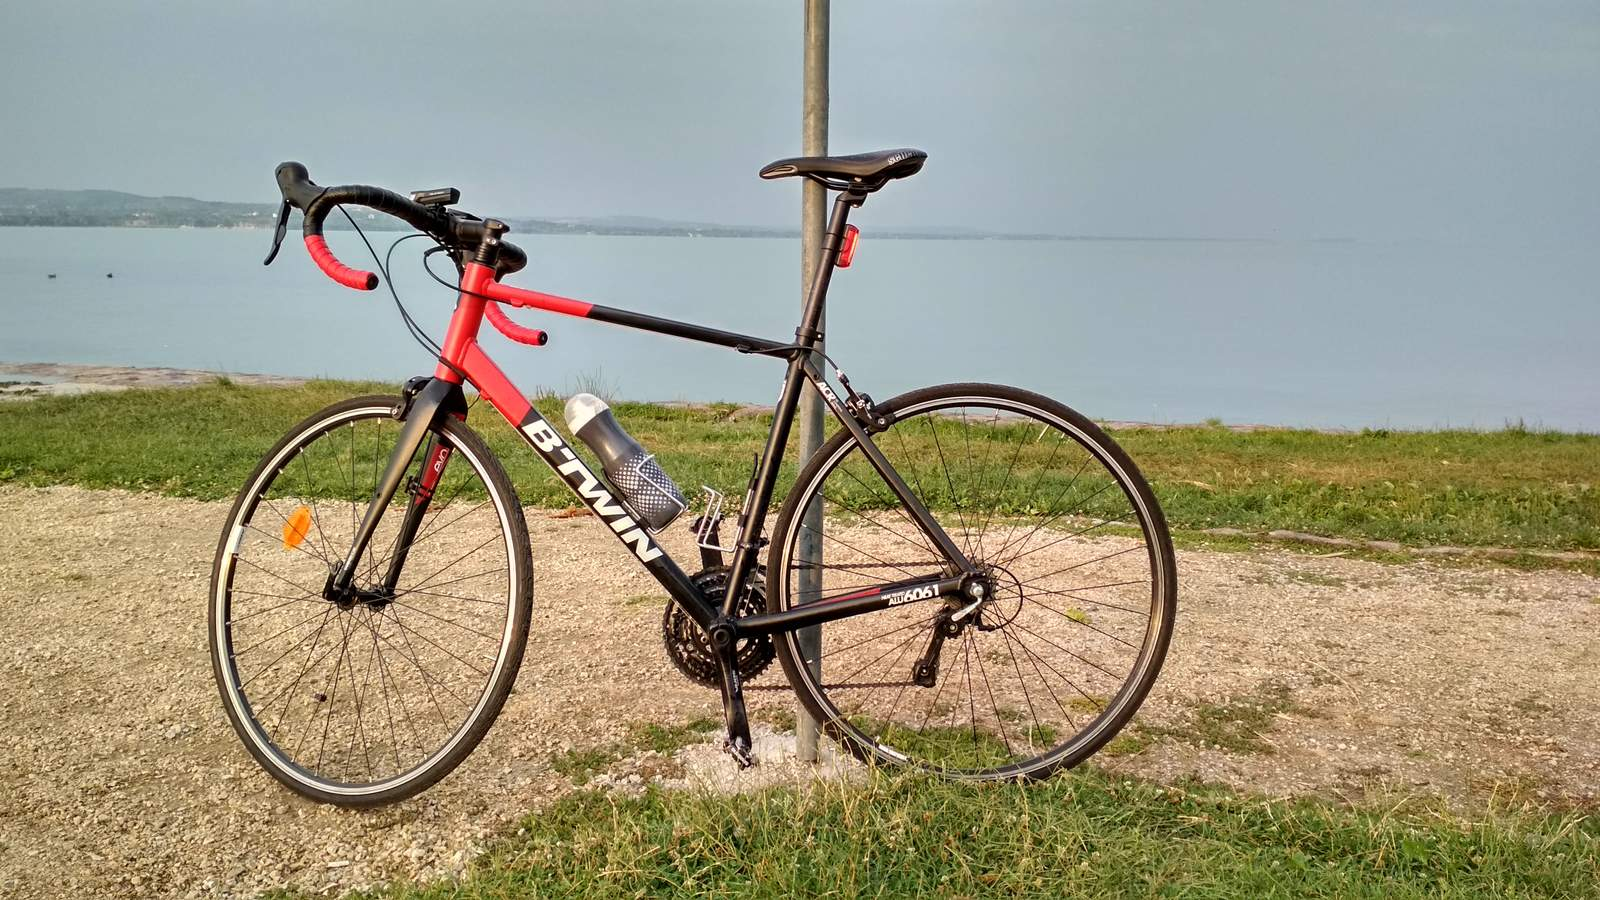 Btwin Triban 520